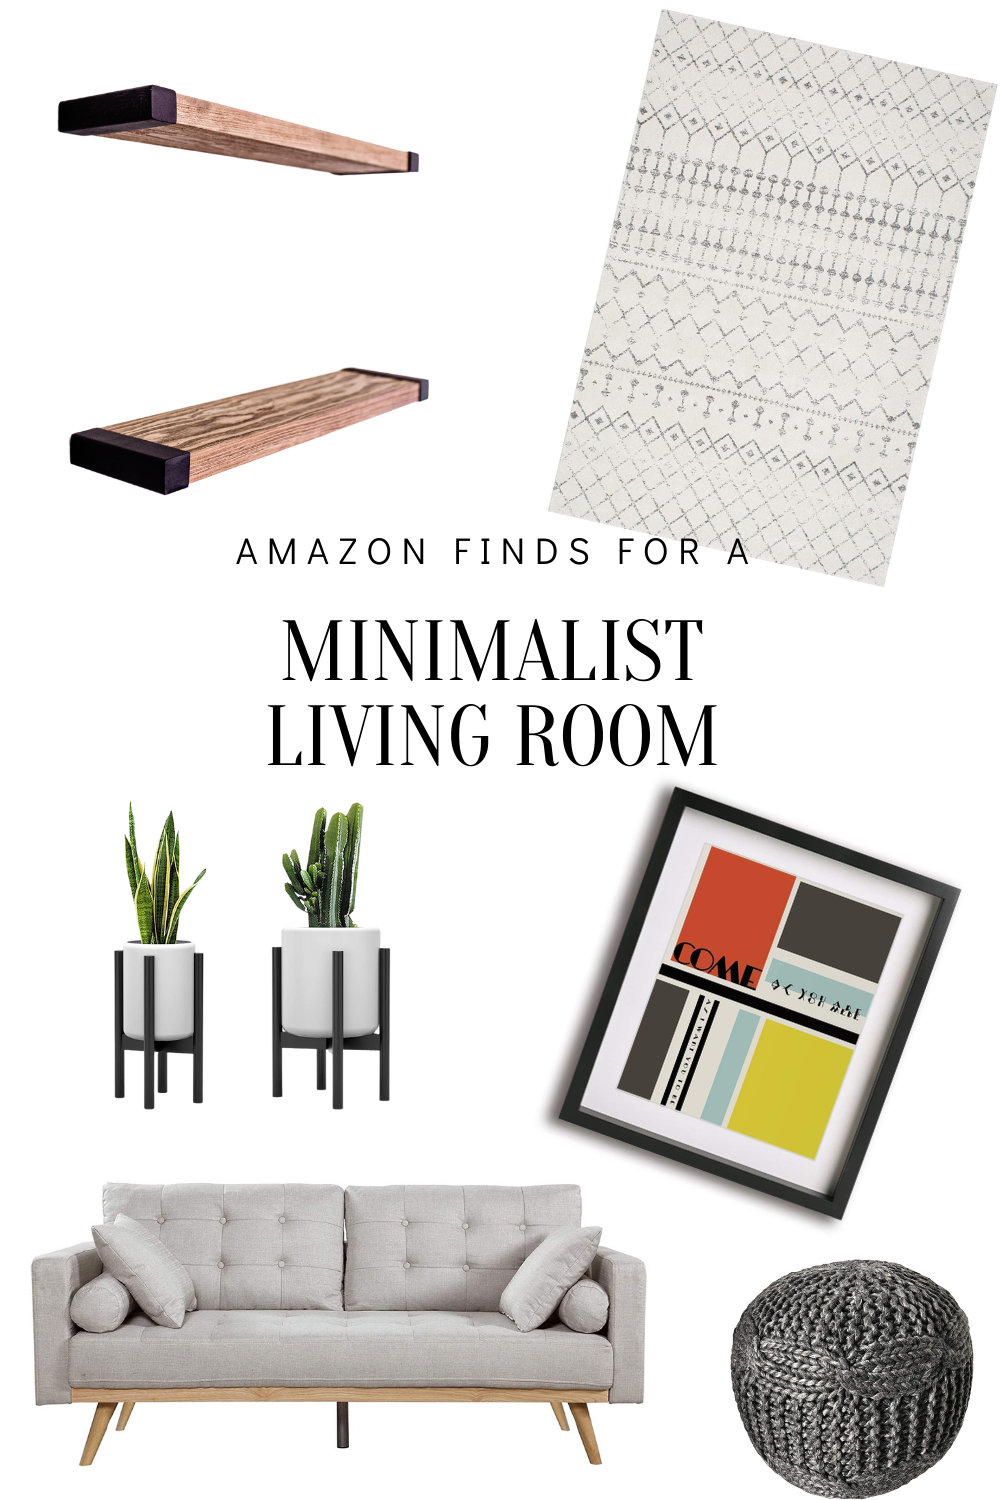 Creating A Minimalist Living Room Under $600